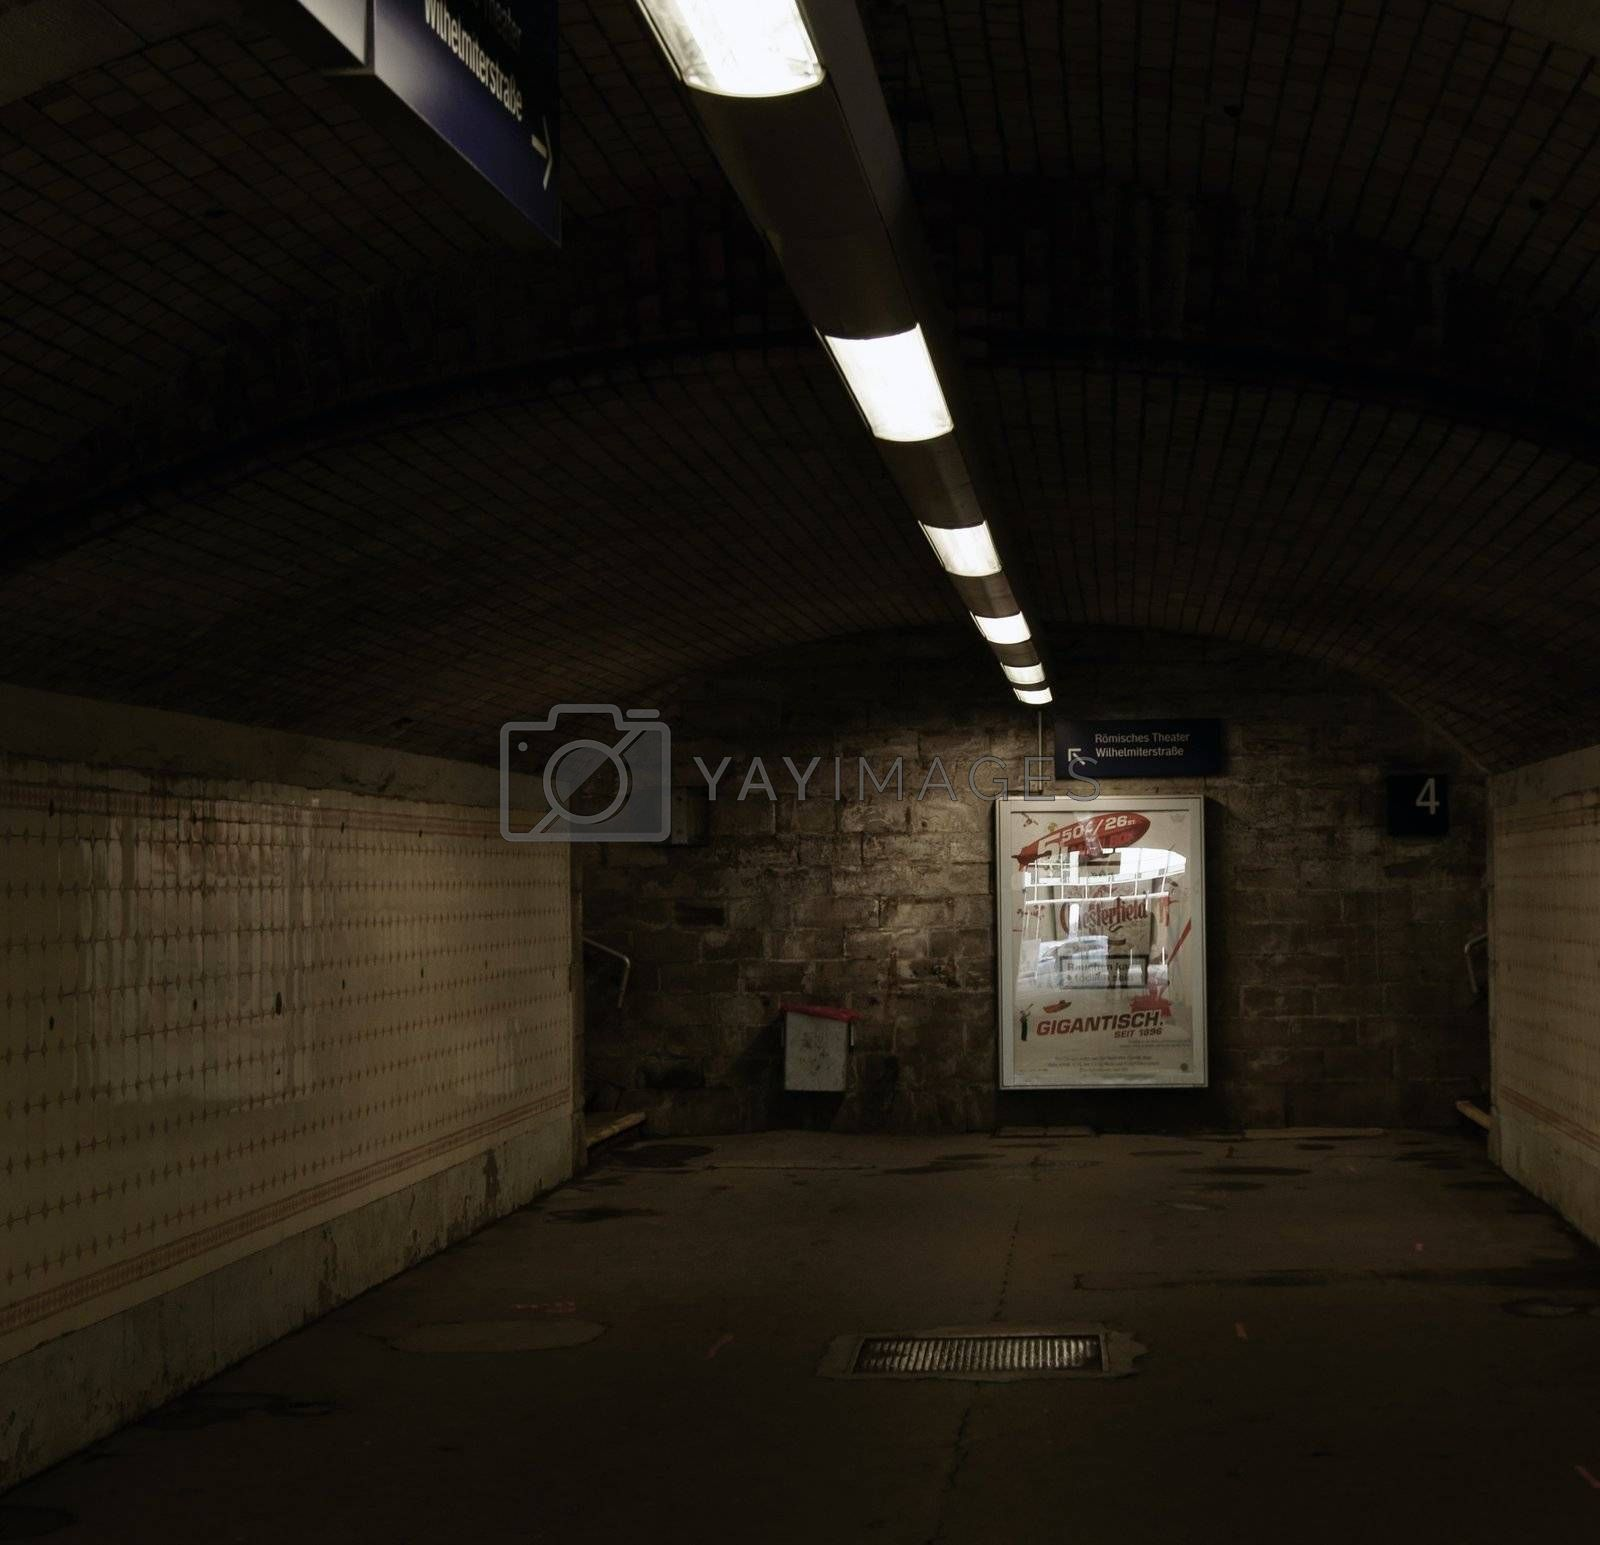 Dark tunnel from a station with artificial lighting and advertising.